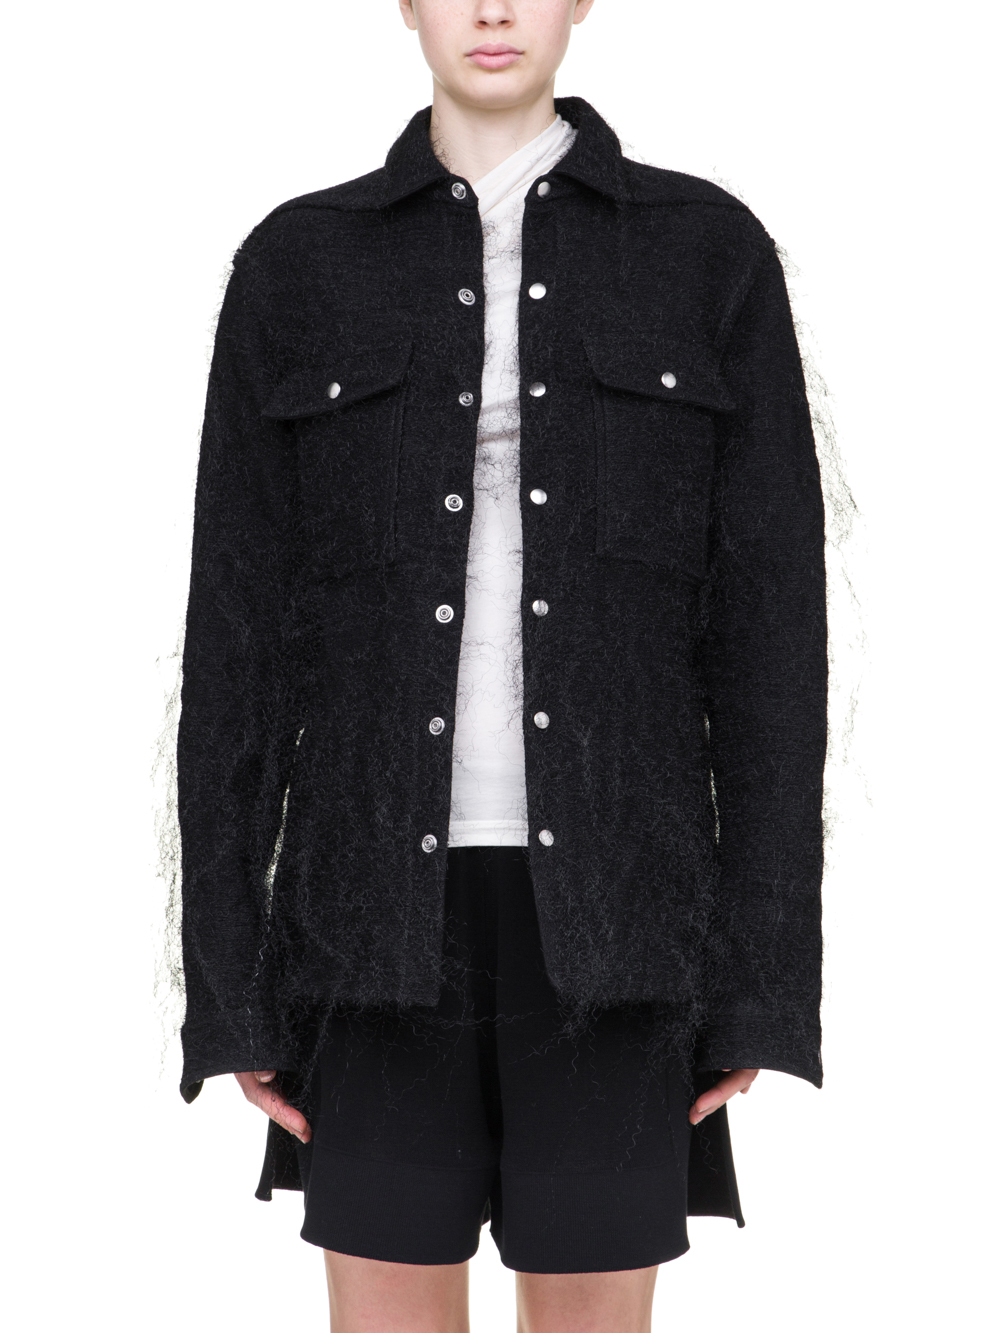 RICK OWENS OUTERSHIRT IN BLACK PLASCTIC SHEARLING